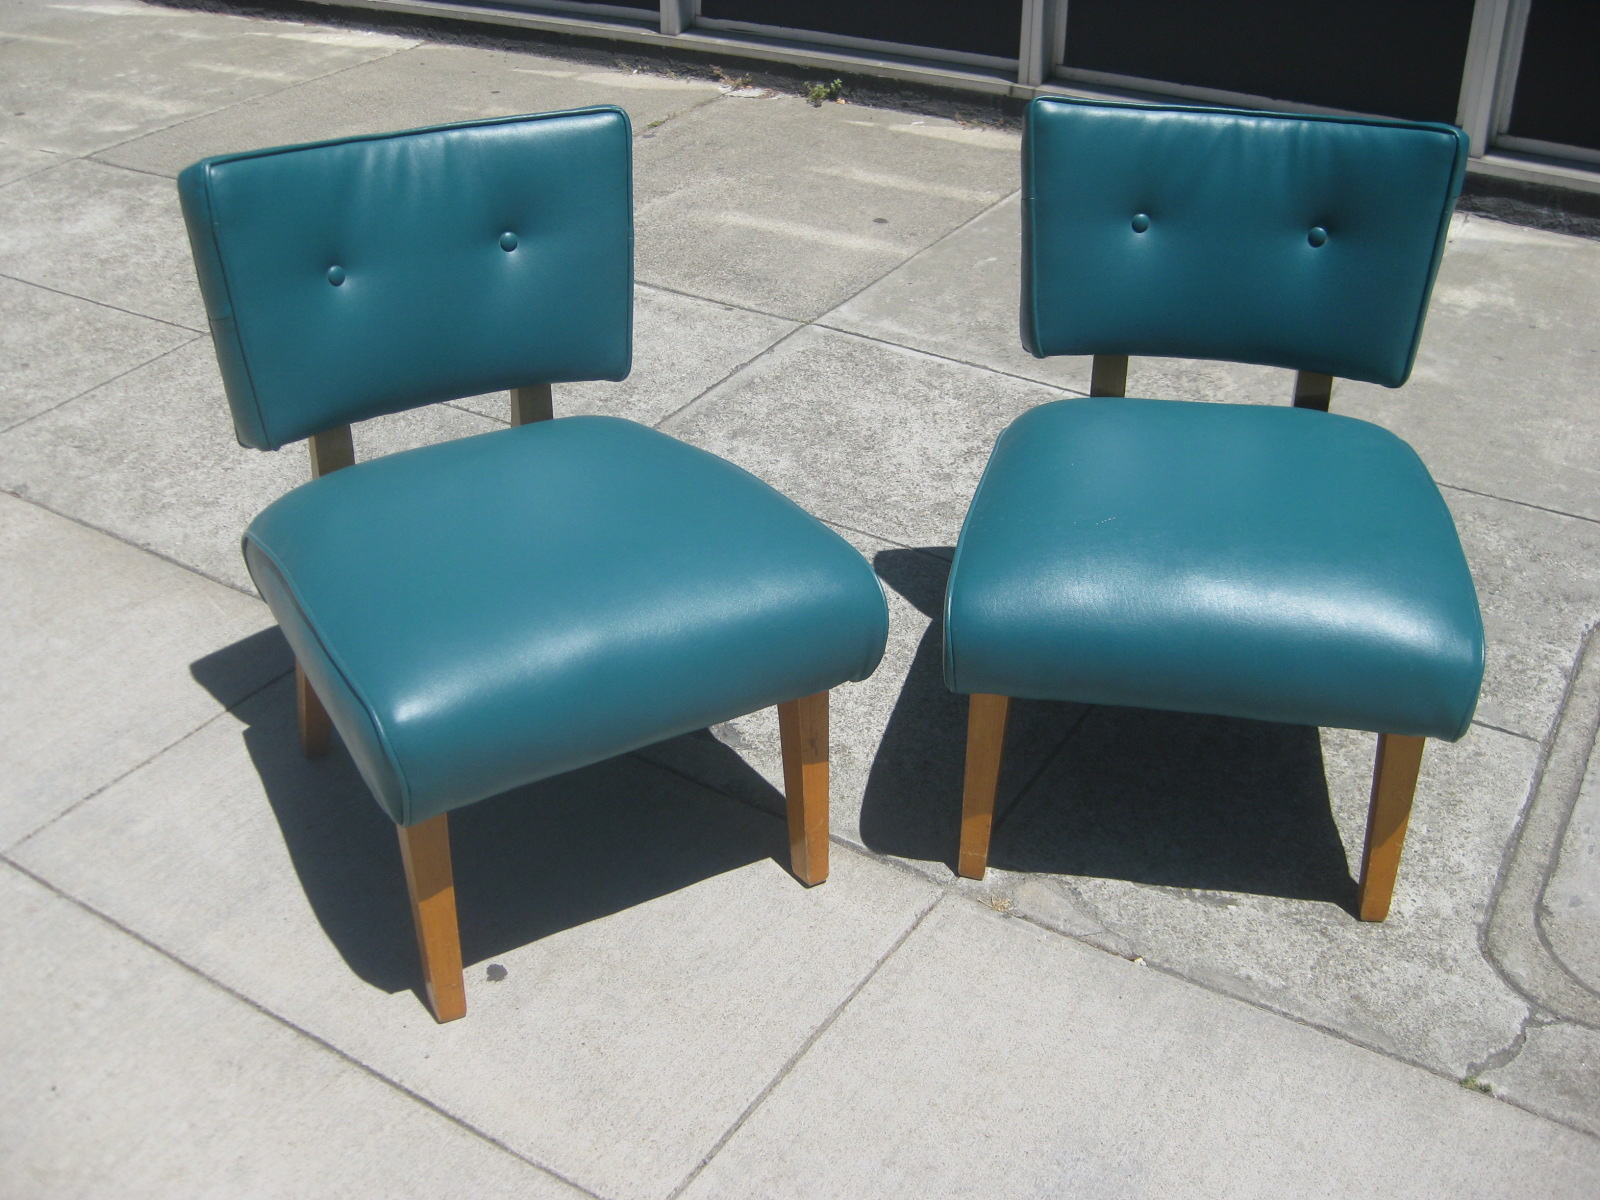 High Quality SOLD   Teal Retro Vinyl Chairs   $100